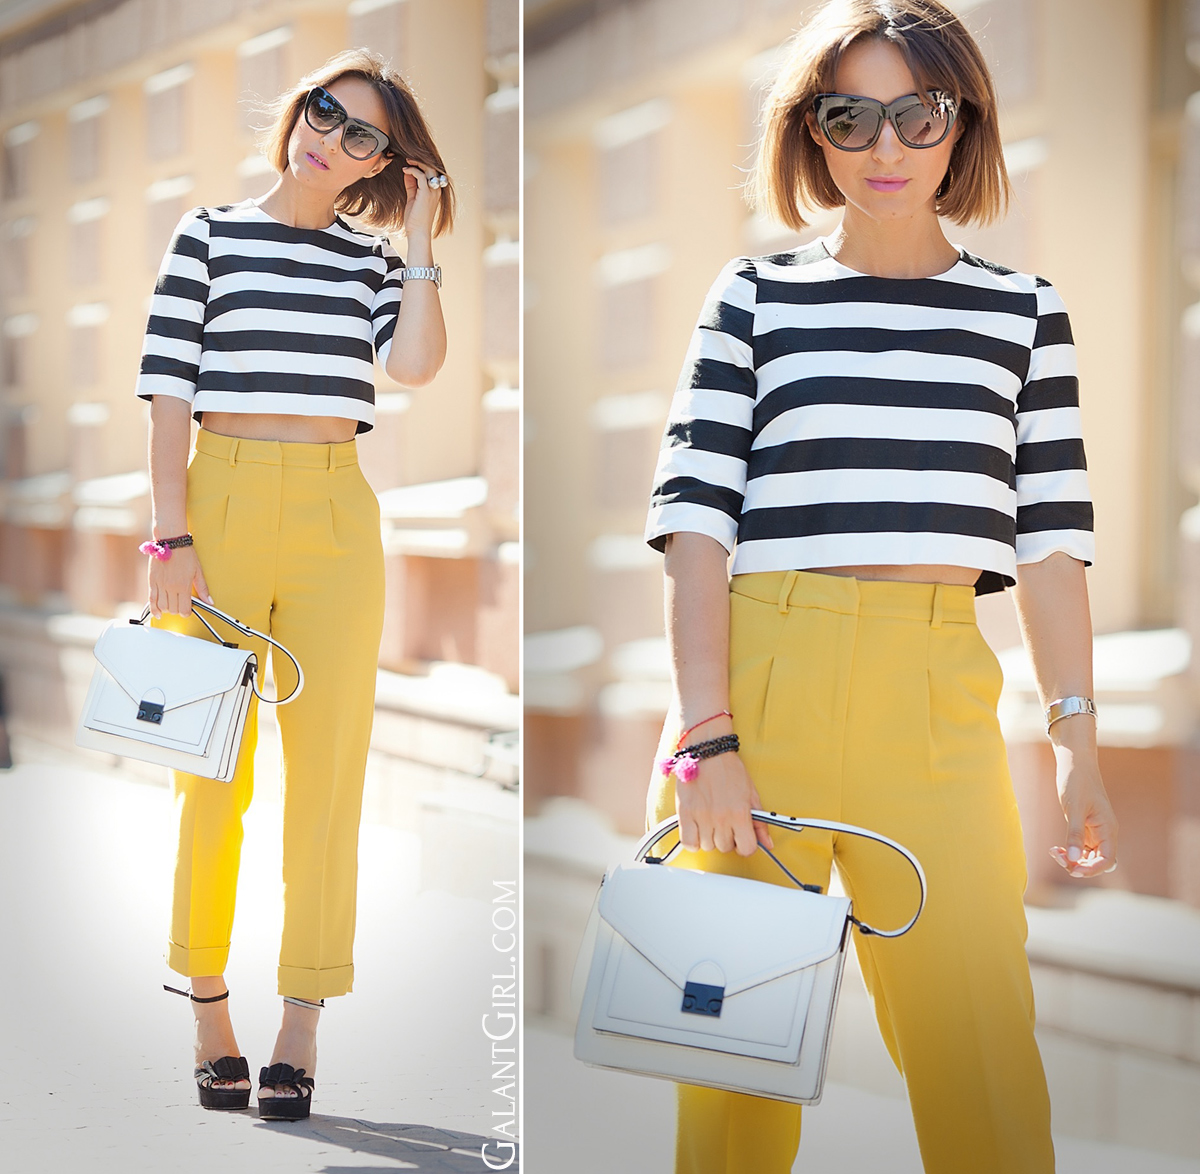 chic-summer-outfit-with-striped-top-by-galant-girl